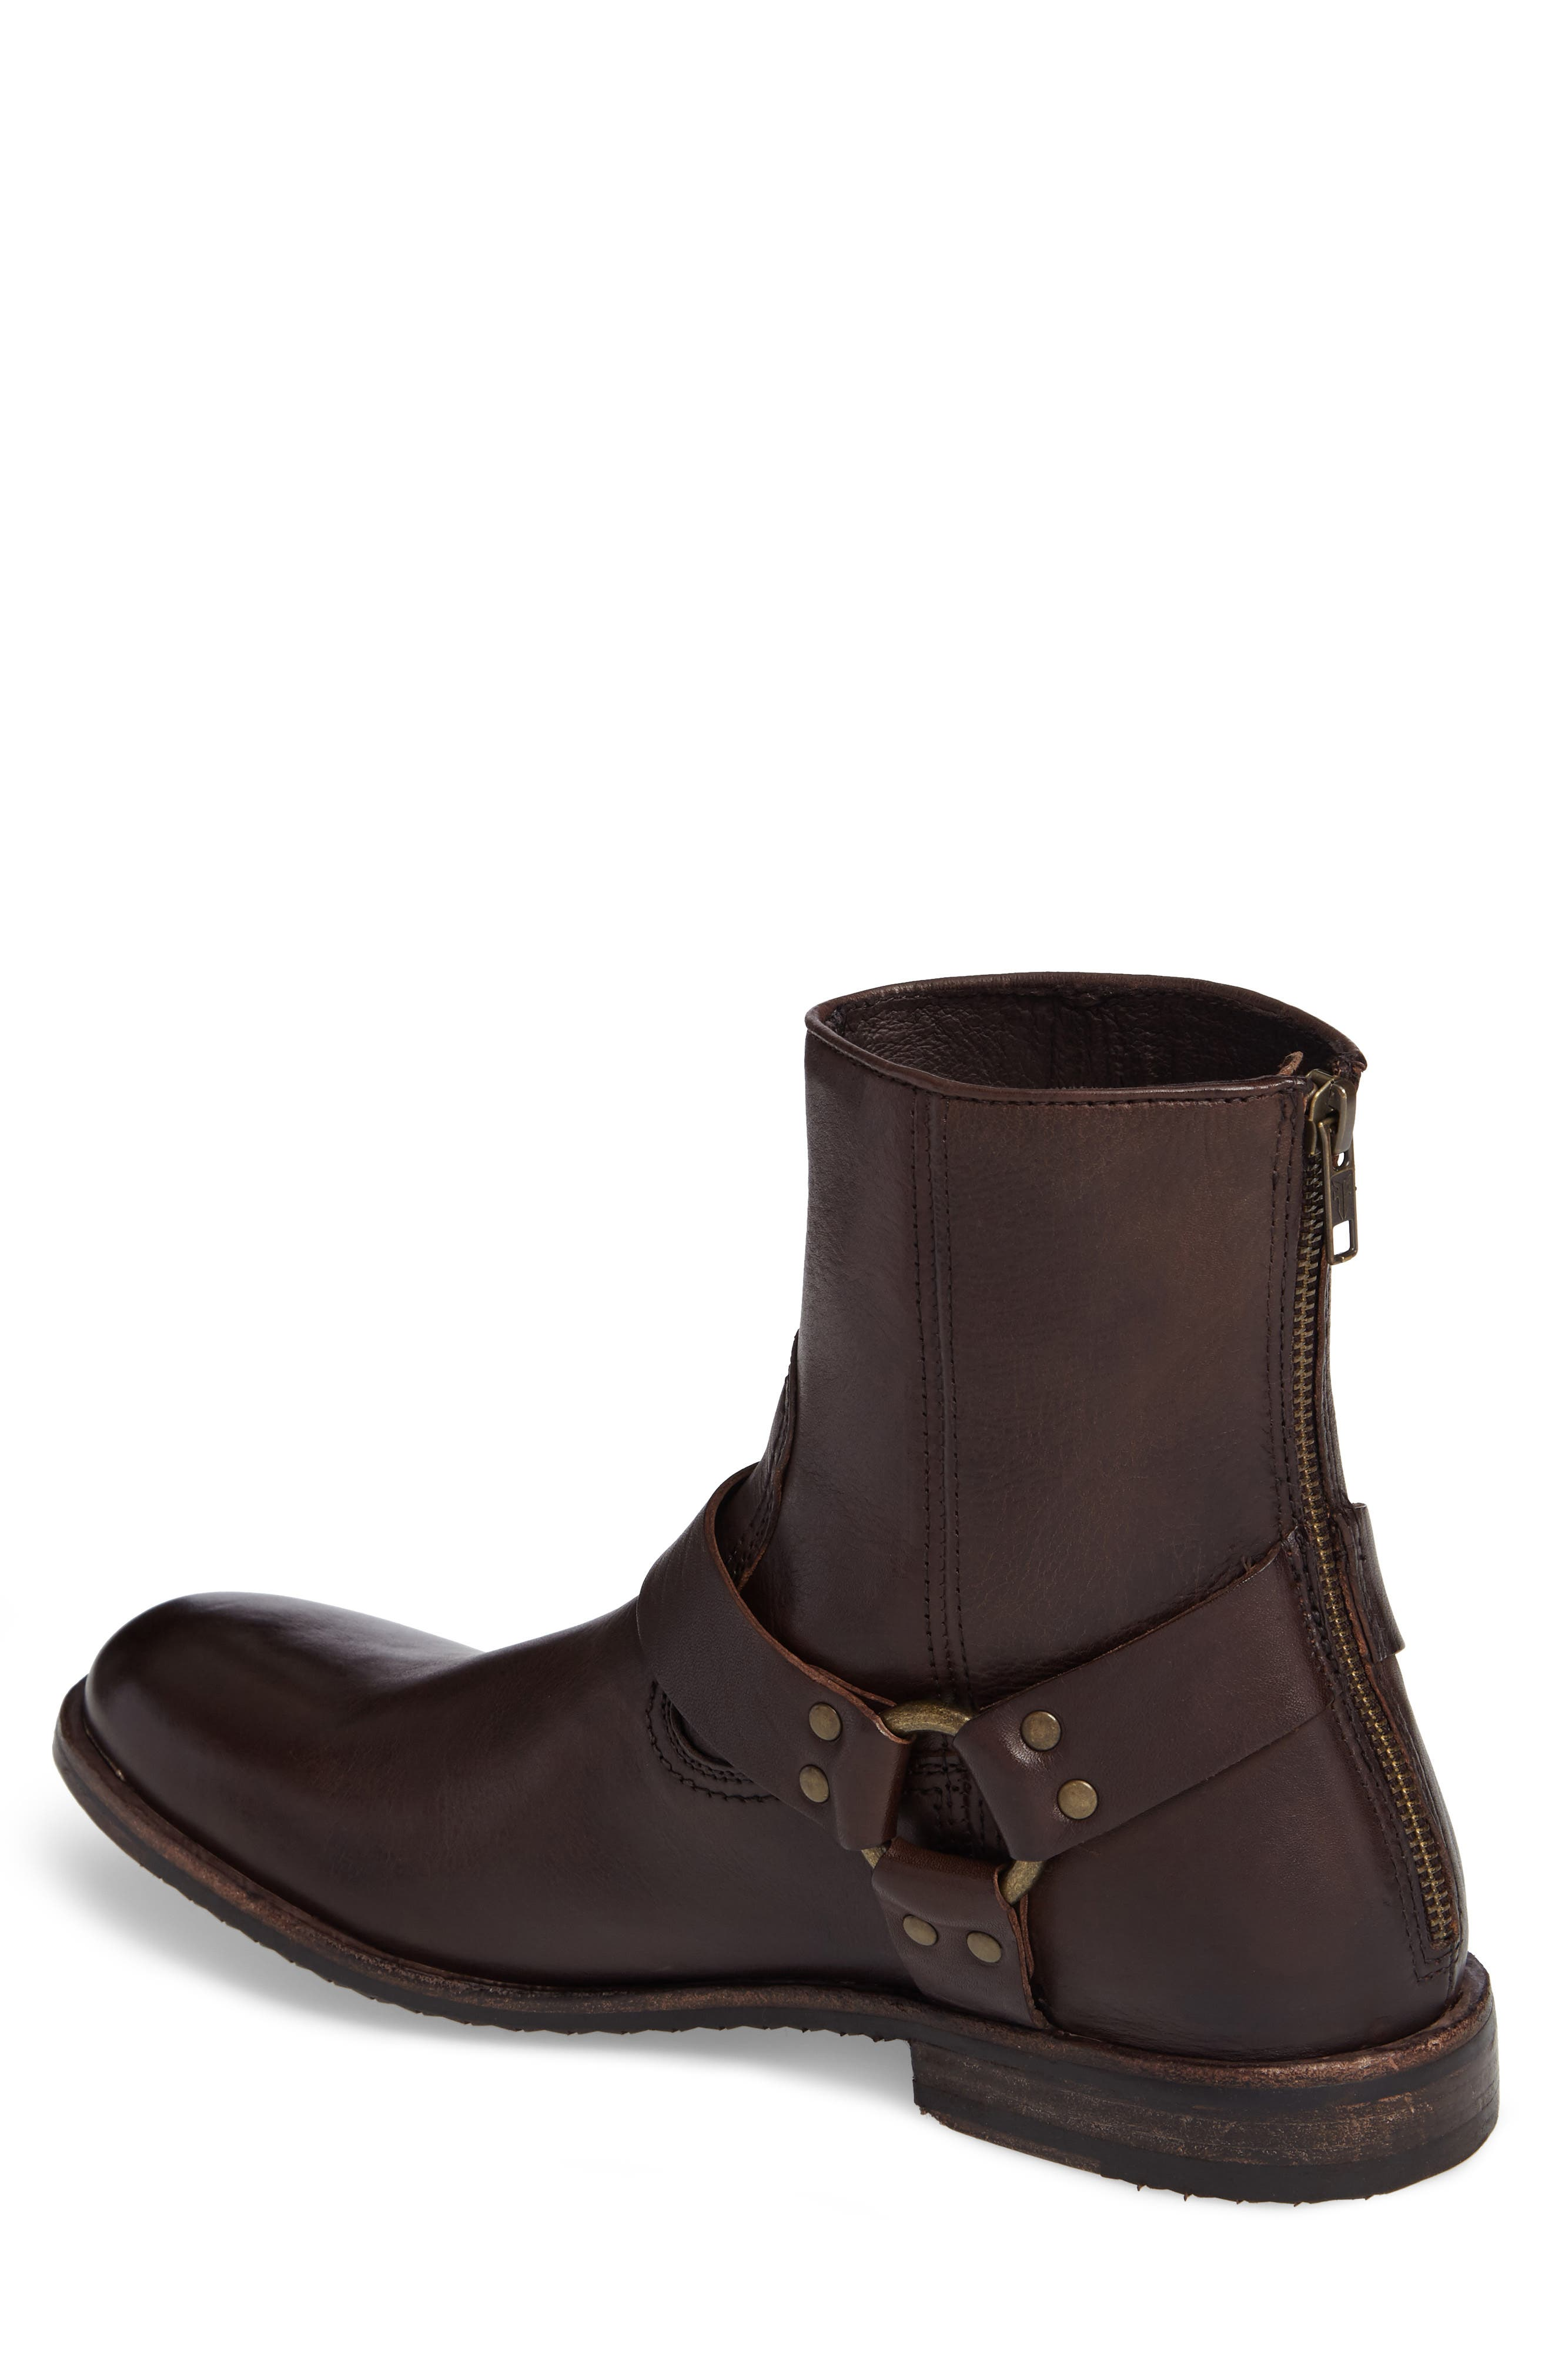 Sam Harness Boot,                             Alternate thumbnail 2, color,                             Dark Brown Leather